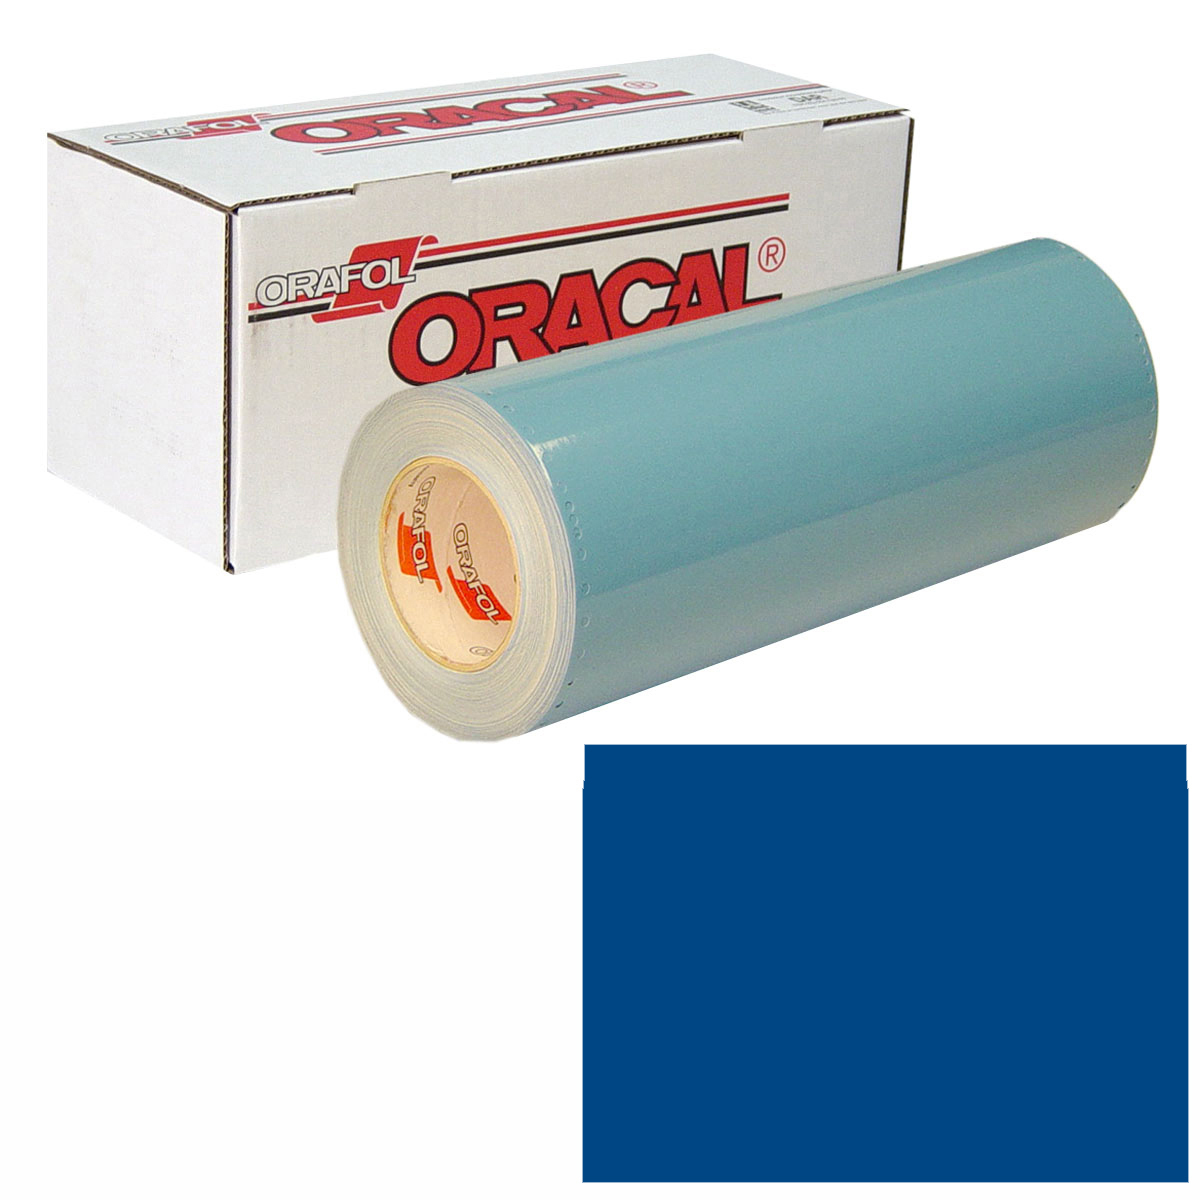 ORACAL 751 Unp 48in X 50yd 067 Blue